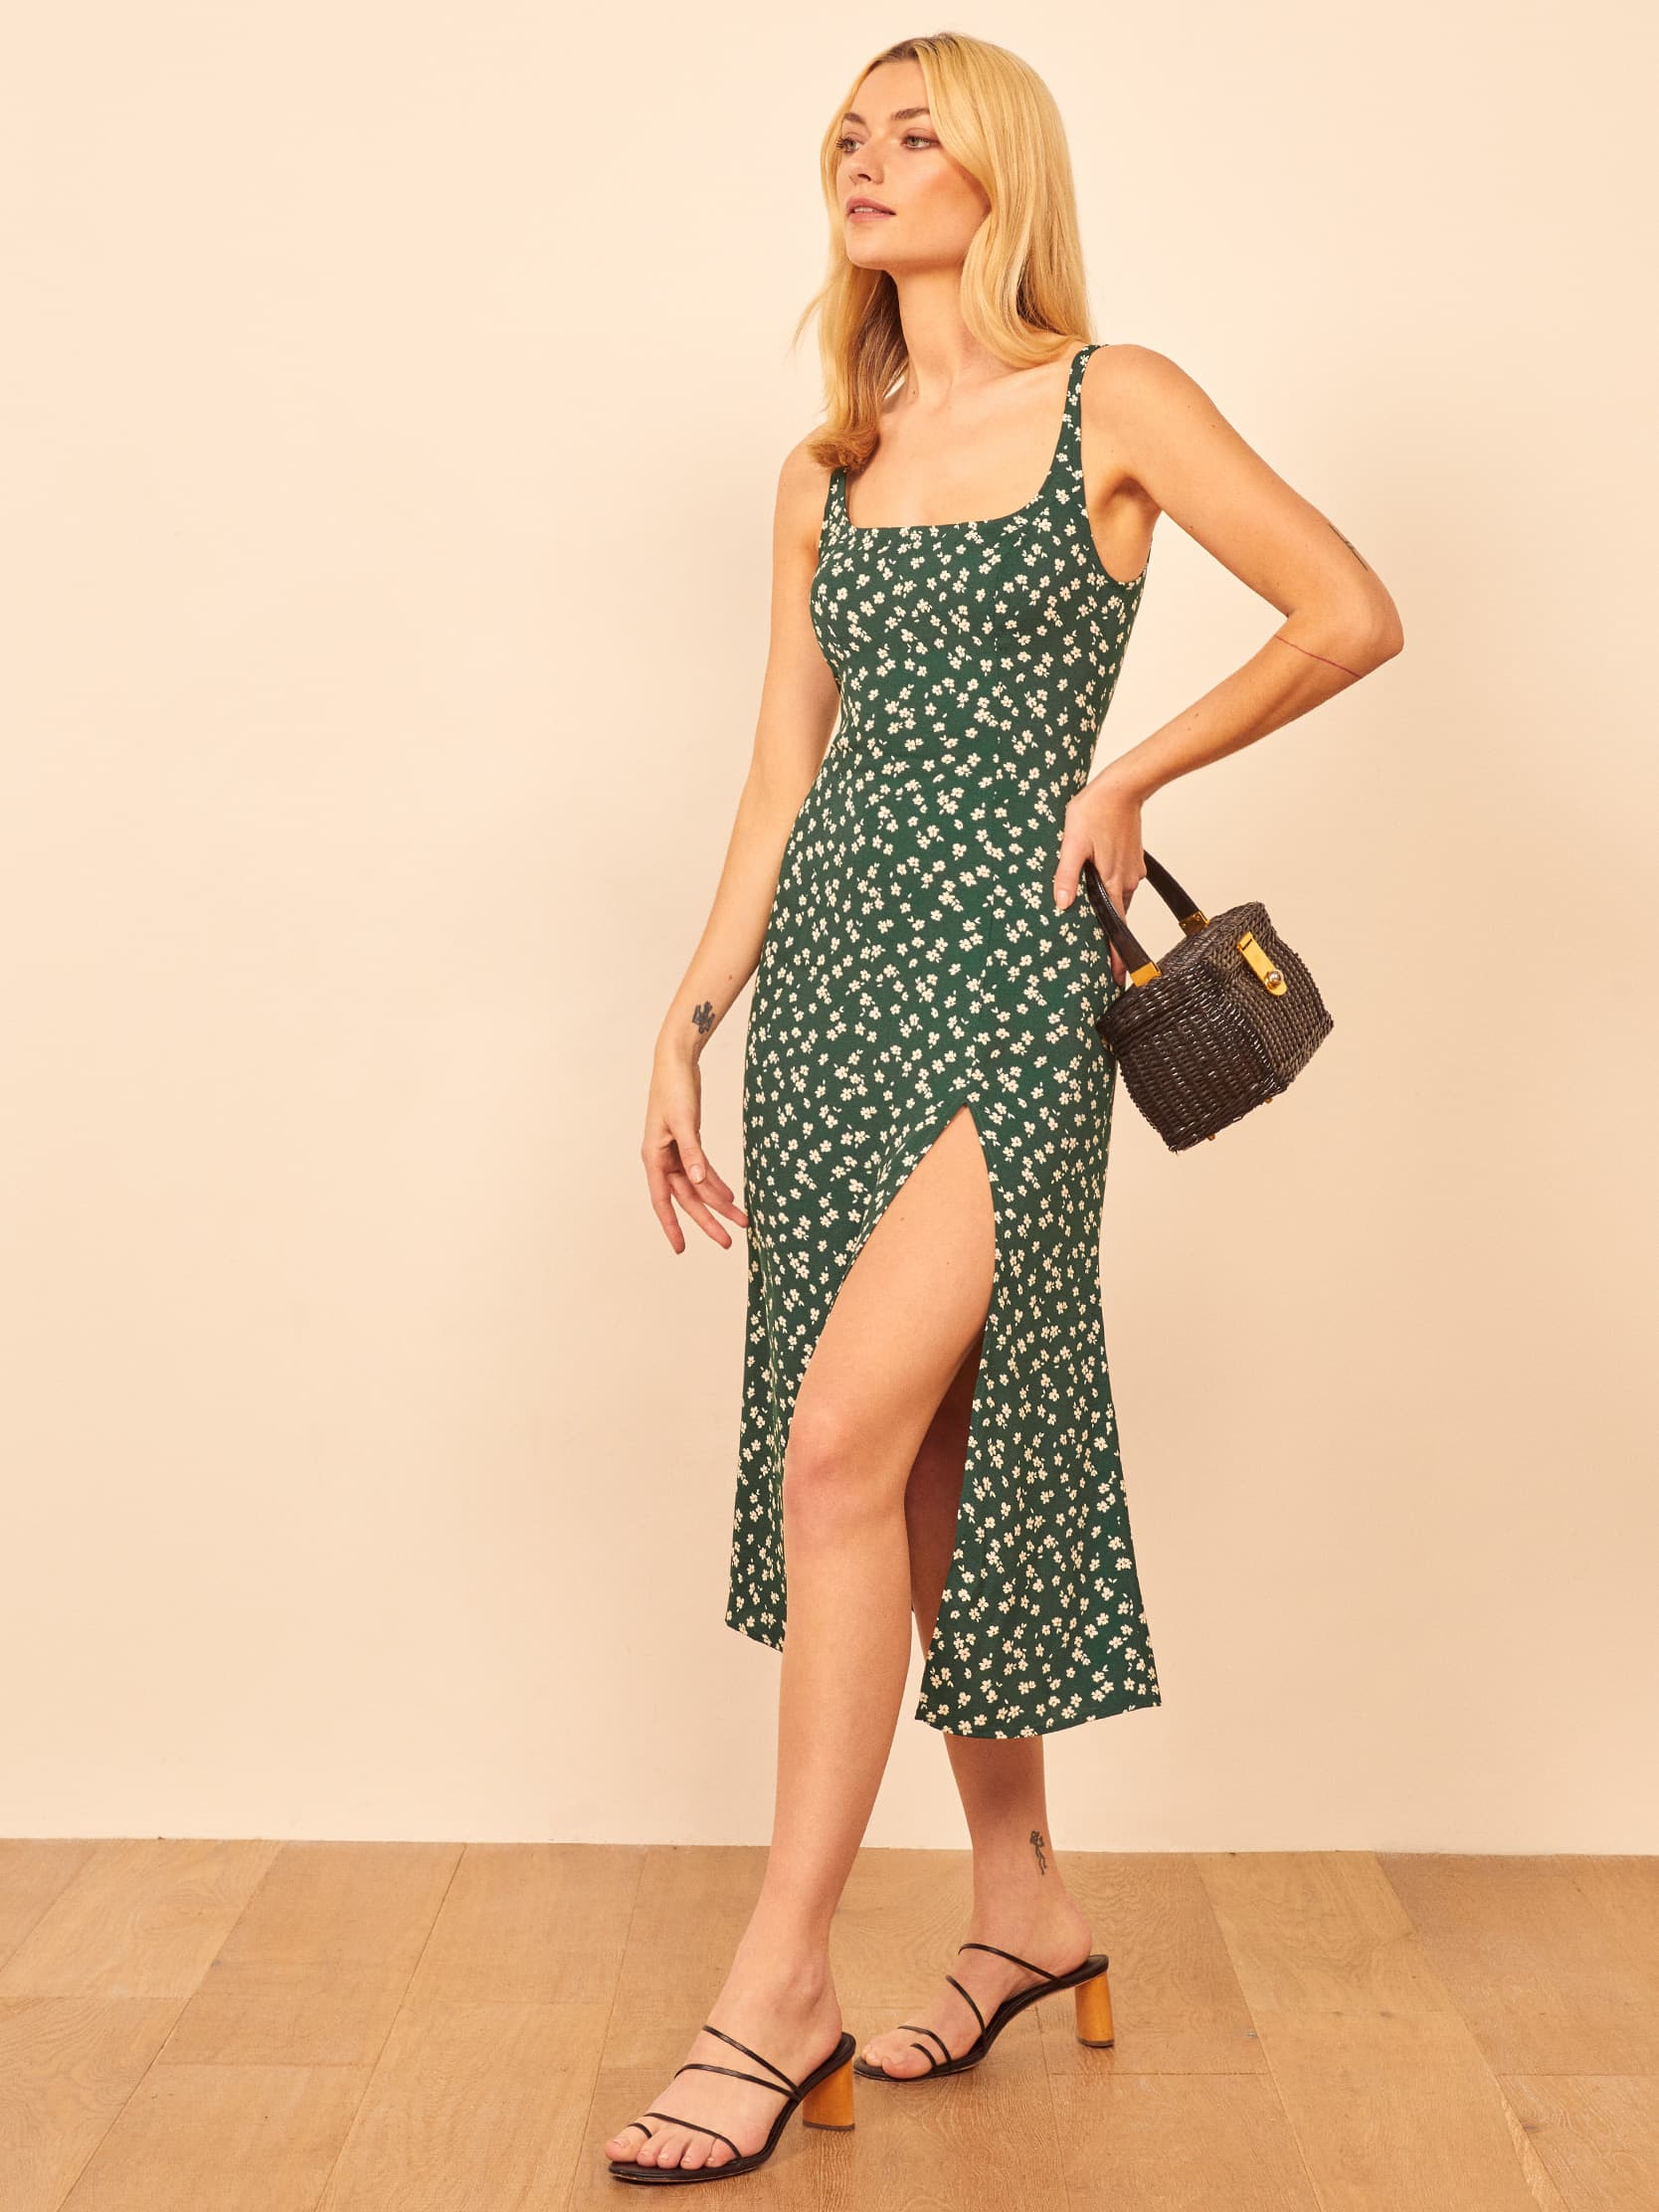 Gilmore Dress by Reformation, available on thereformation.com for $158 Kaia Gerber Dress SIMILAR PRODUCT